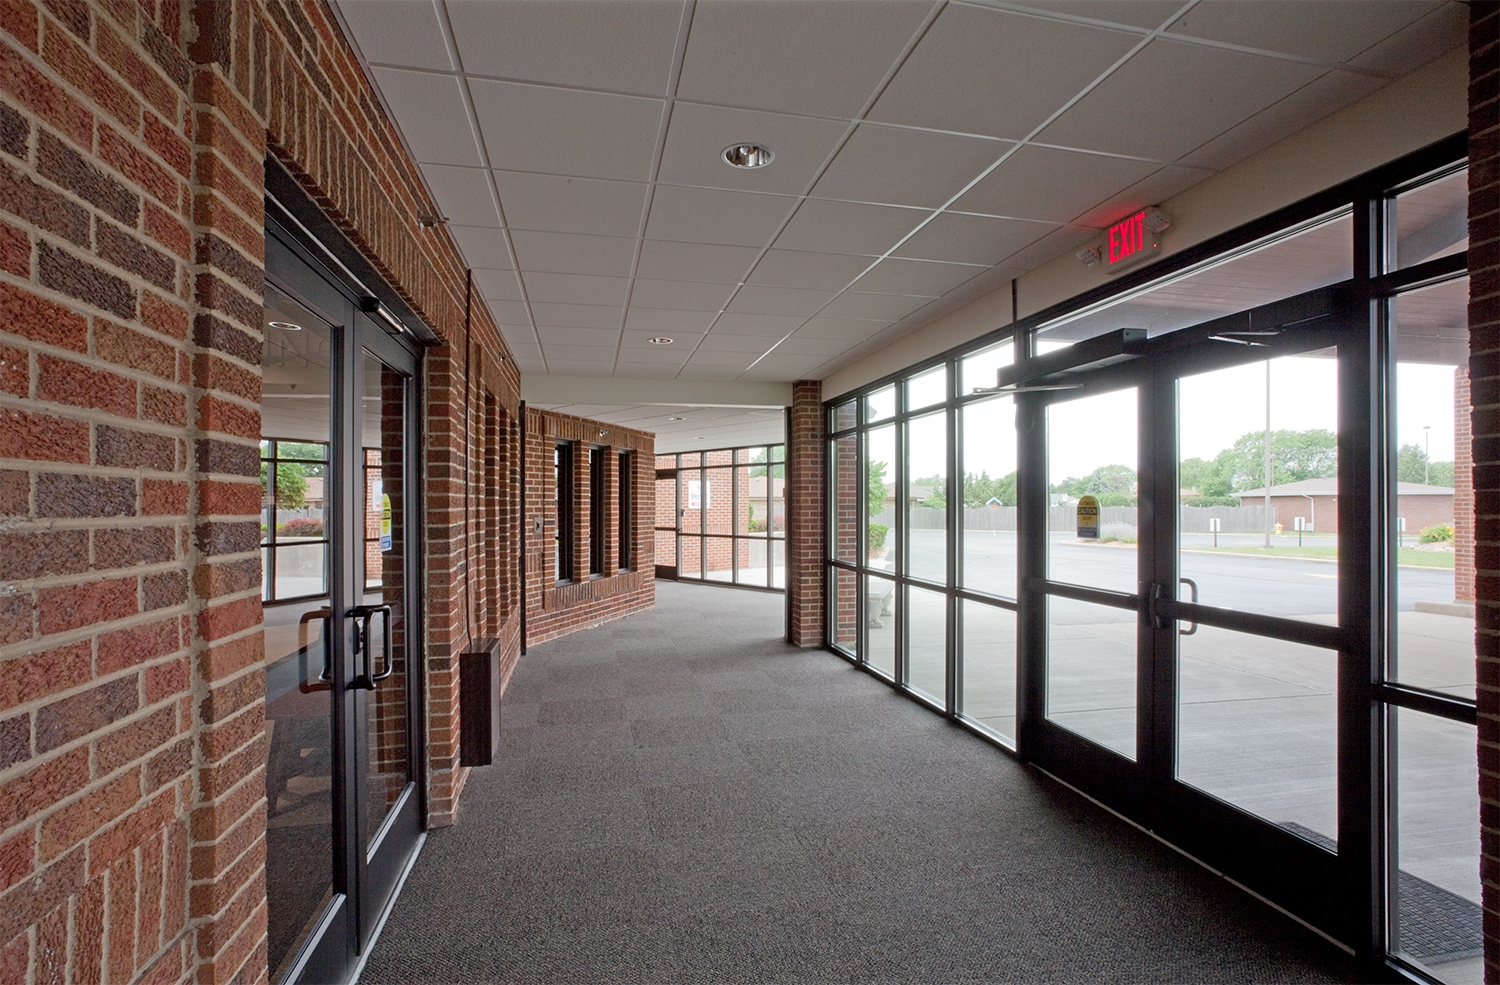 orland-park-interior-entrance-web.jpg